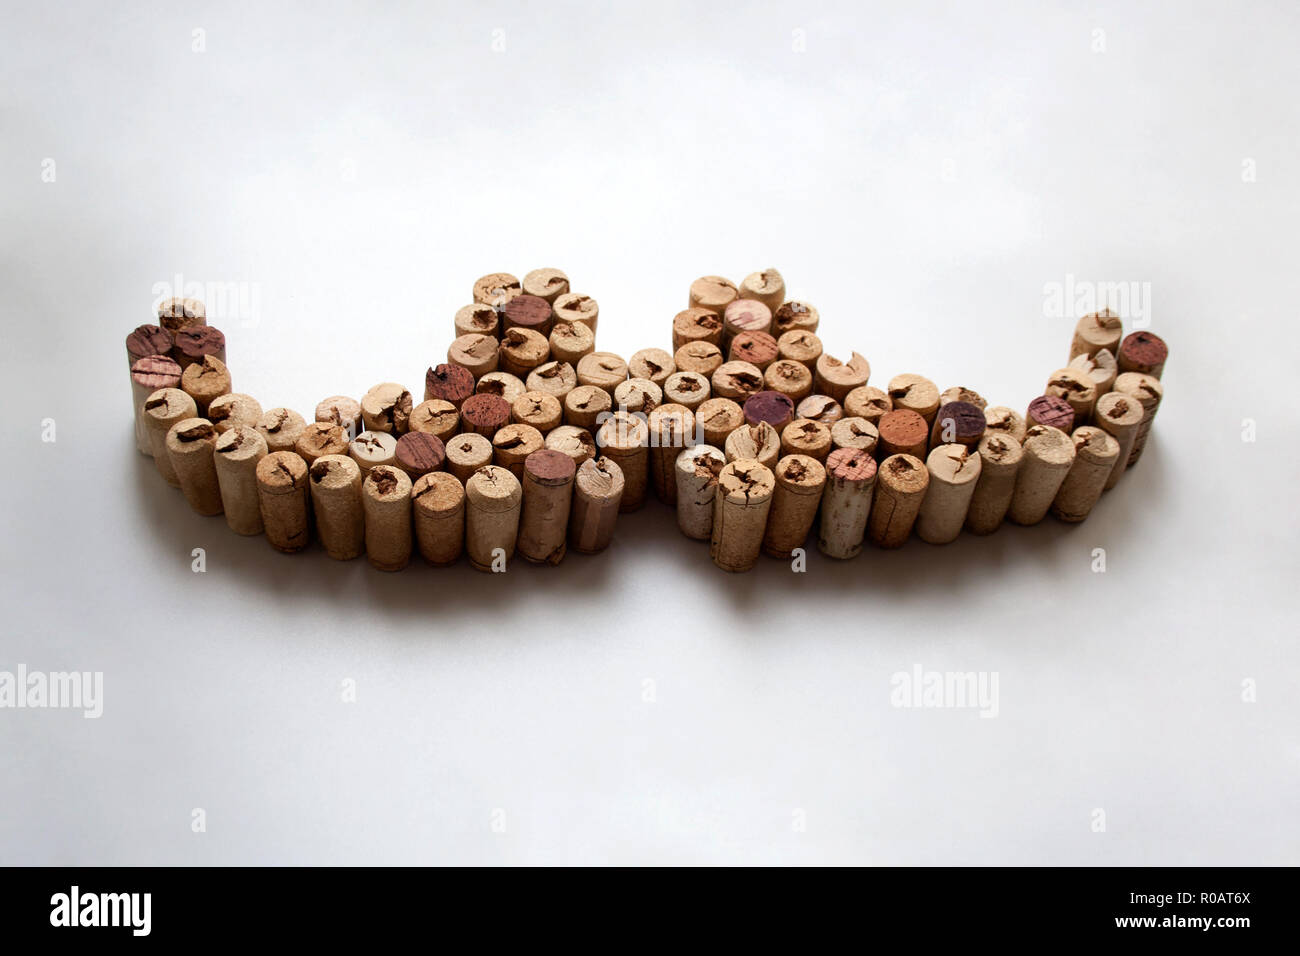 Wine corks mustache composition isolated on white background - Stock Image